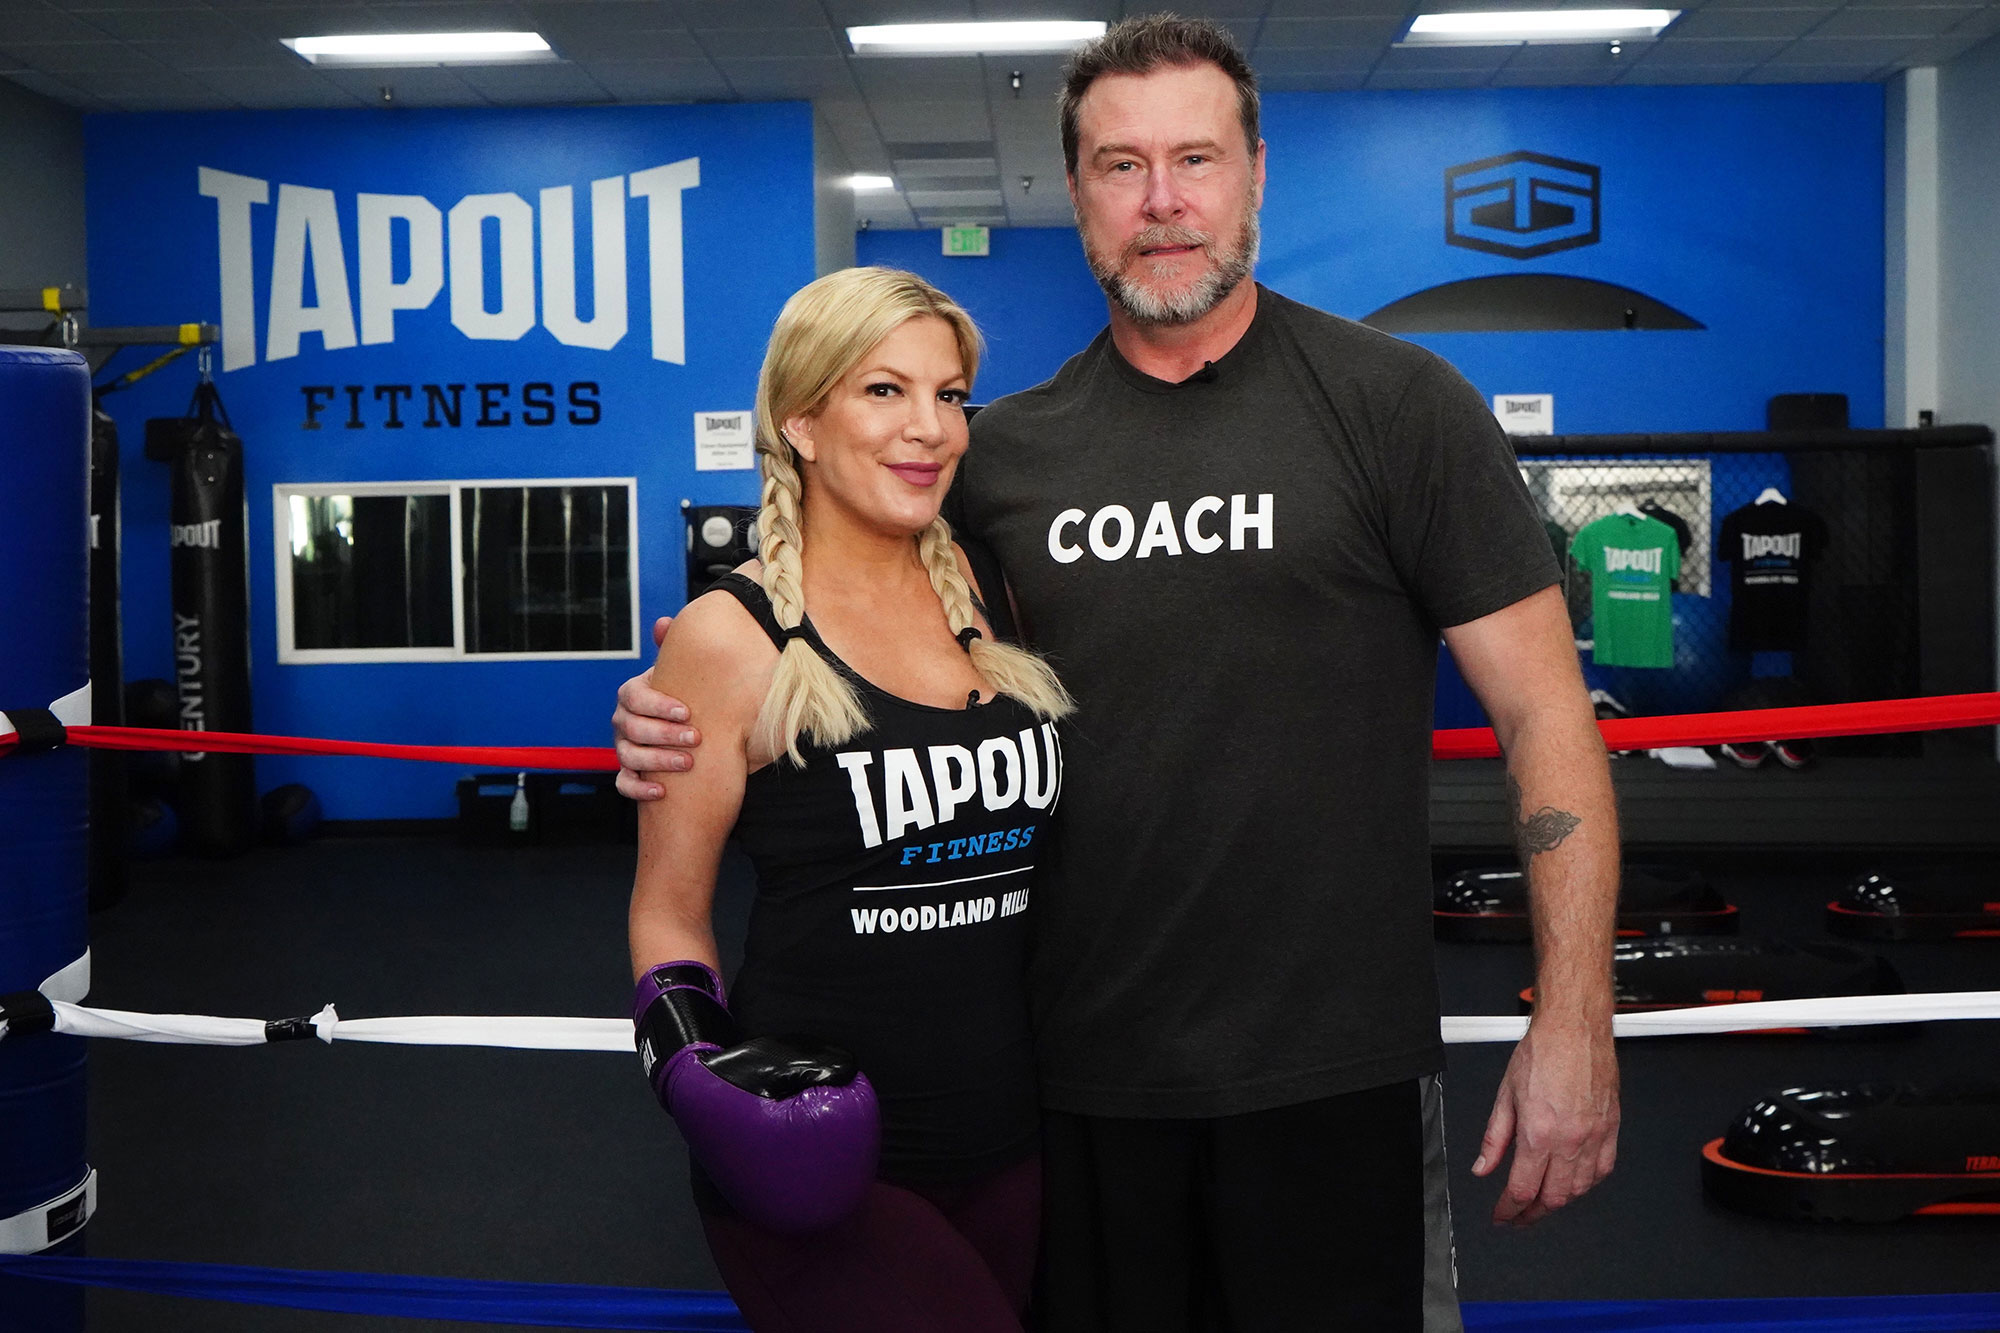 Tori Spelling and Dean McDermott Aren't Shutting Down the Possibility of Having Another Kid - Tori Spelling and Dean McDermott at Tapout Fitness Woodland Hills.